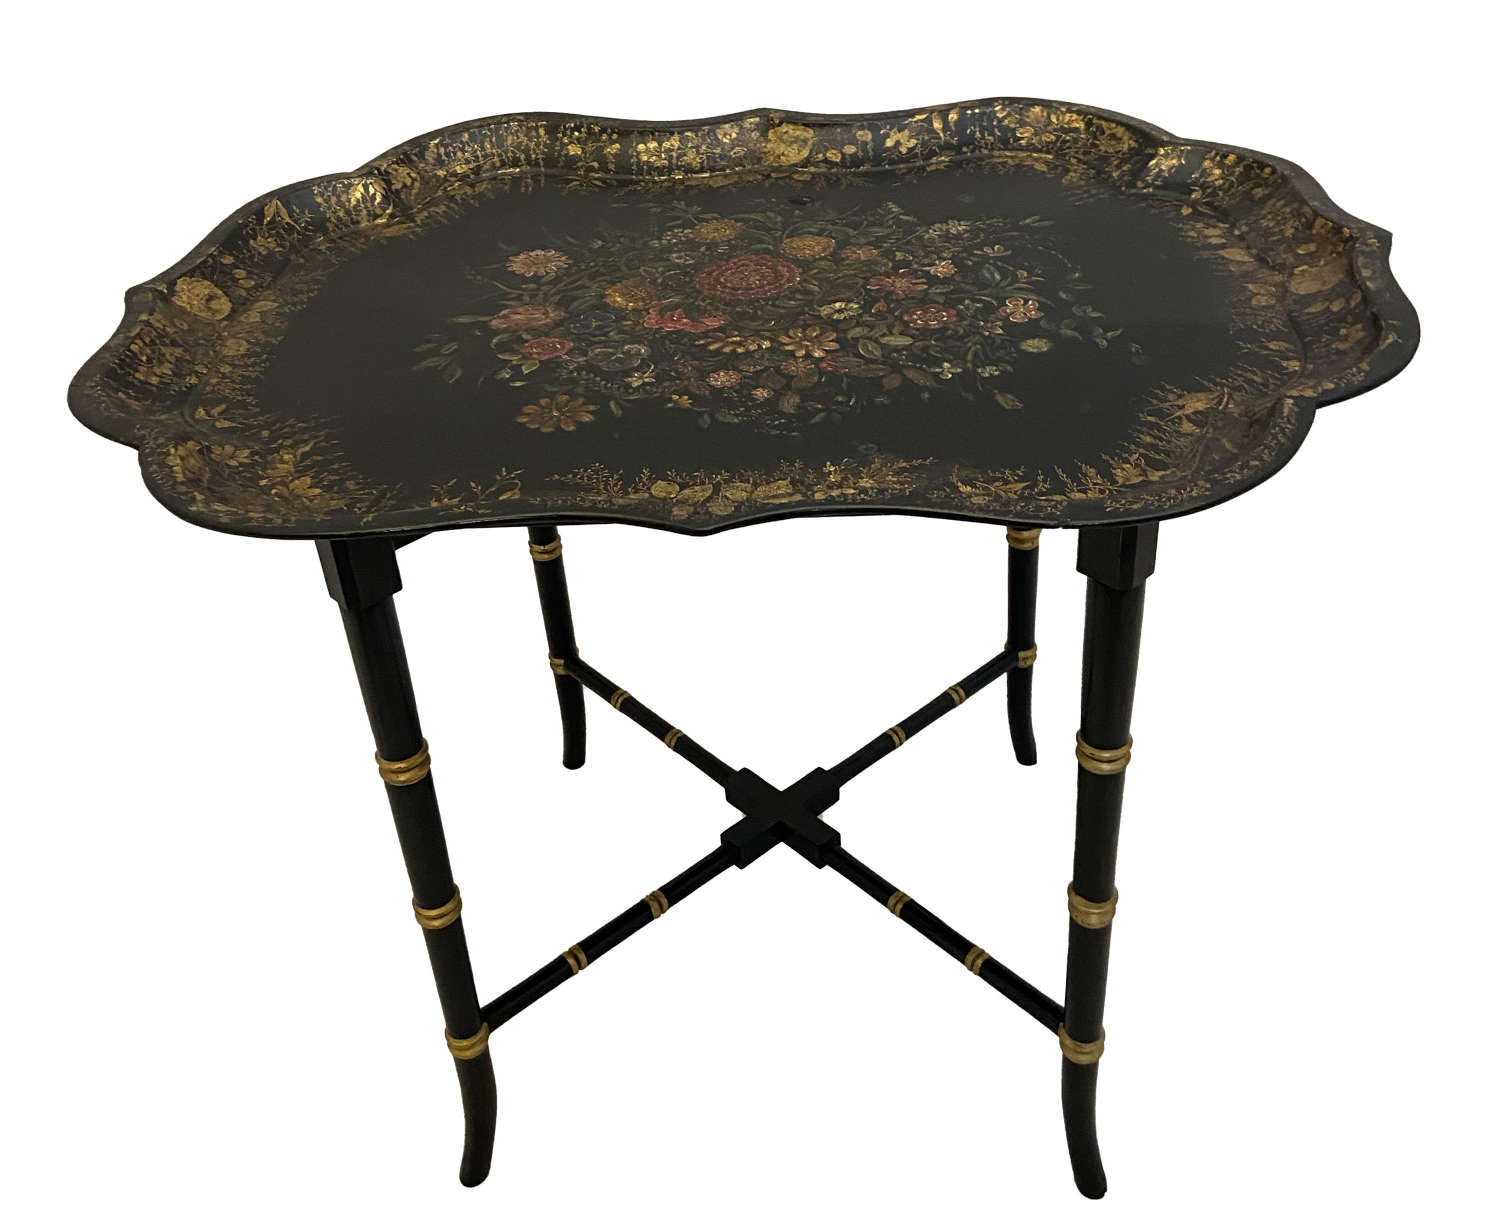 Henry Clay Lacquer Papier Mache Tray on stand